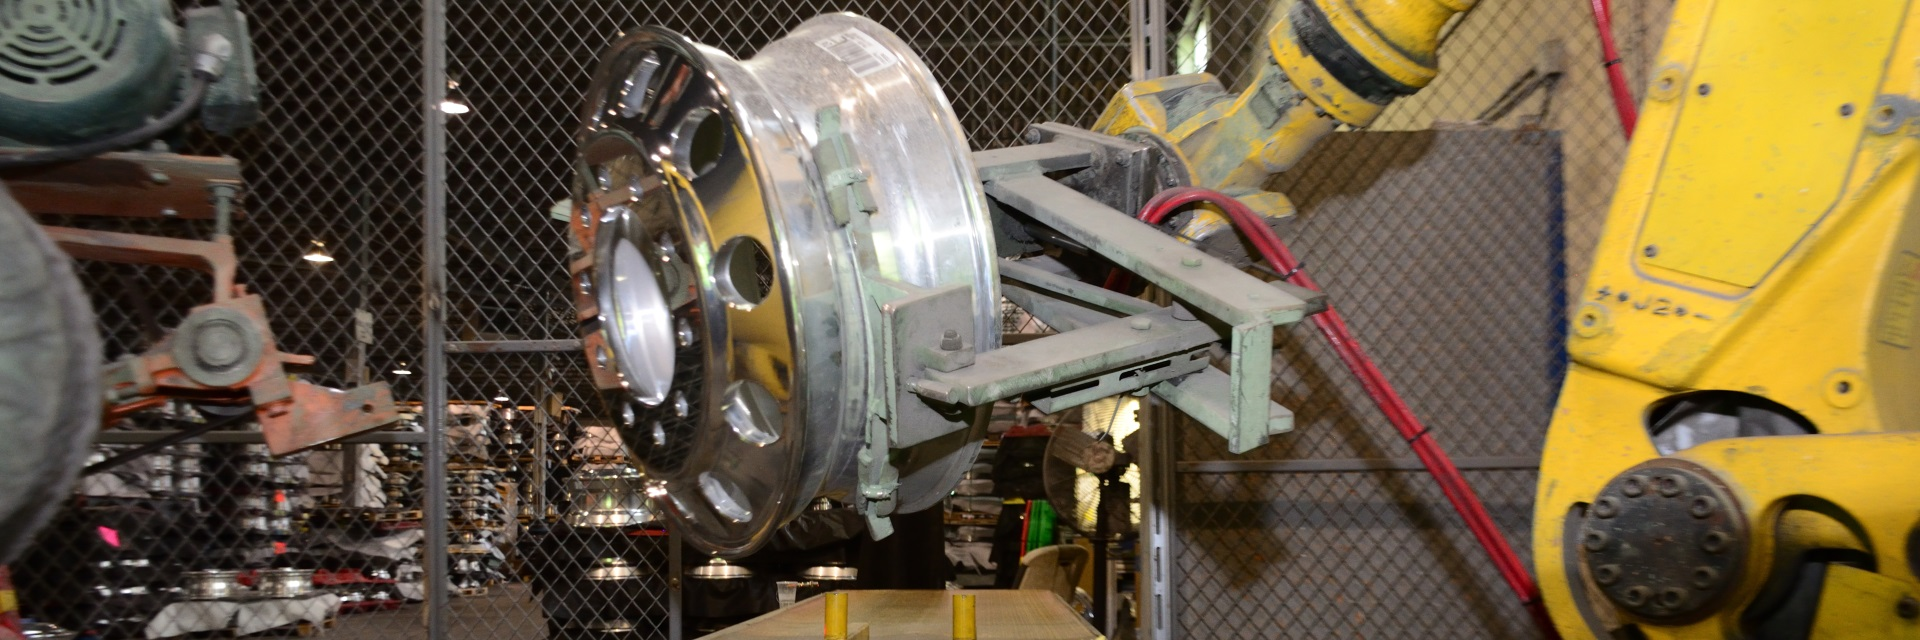 Robotic arm carrying heavy truck wheel to buffer